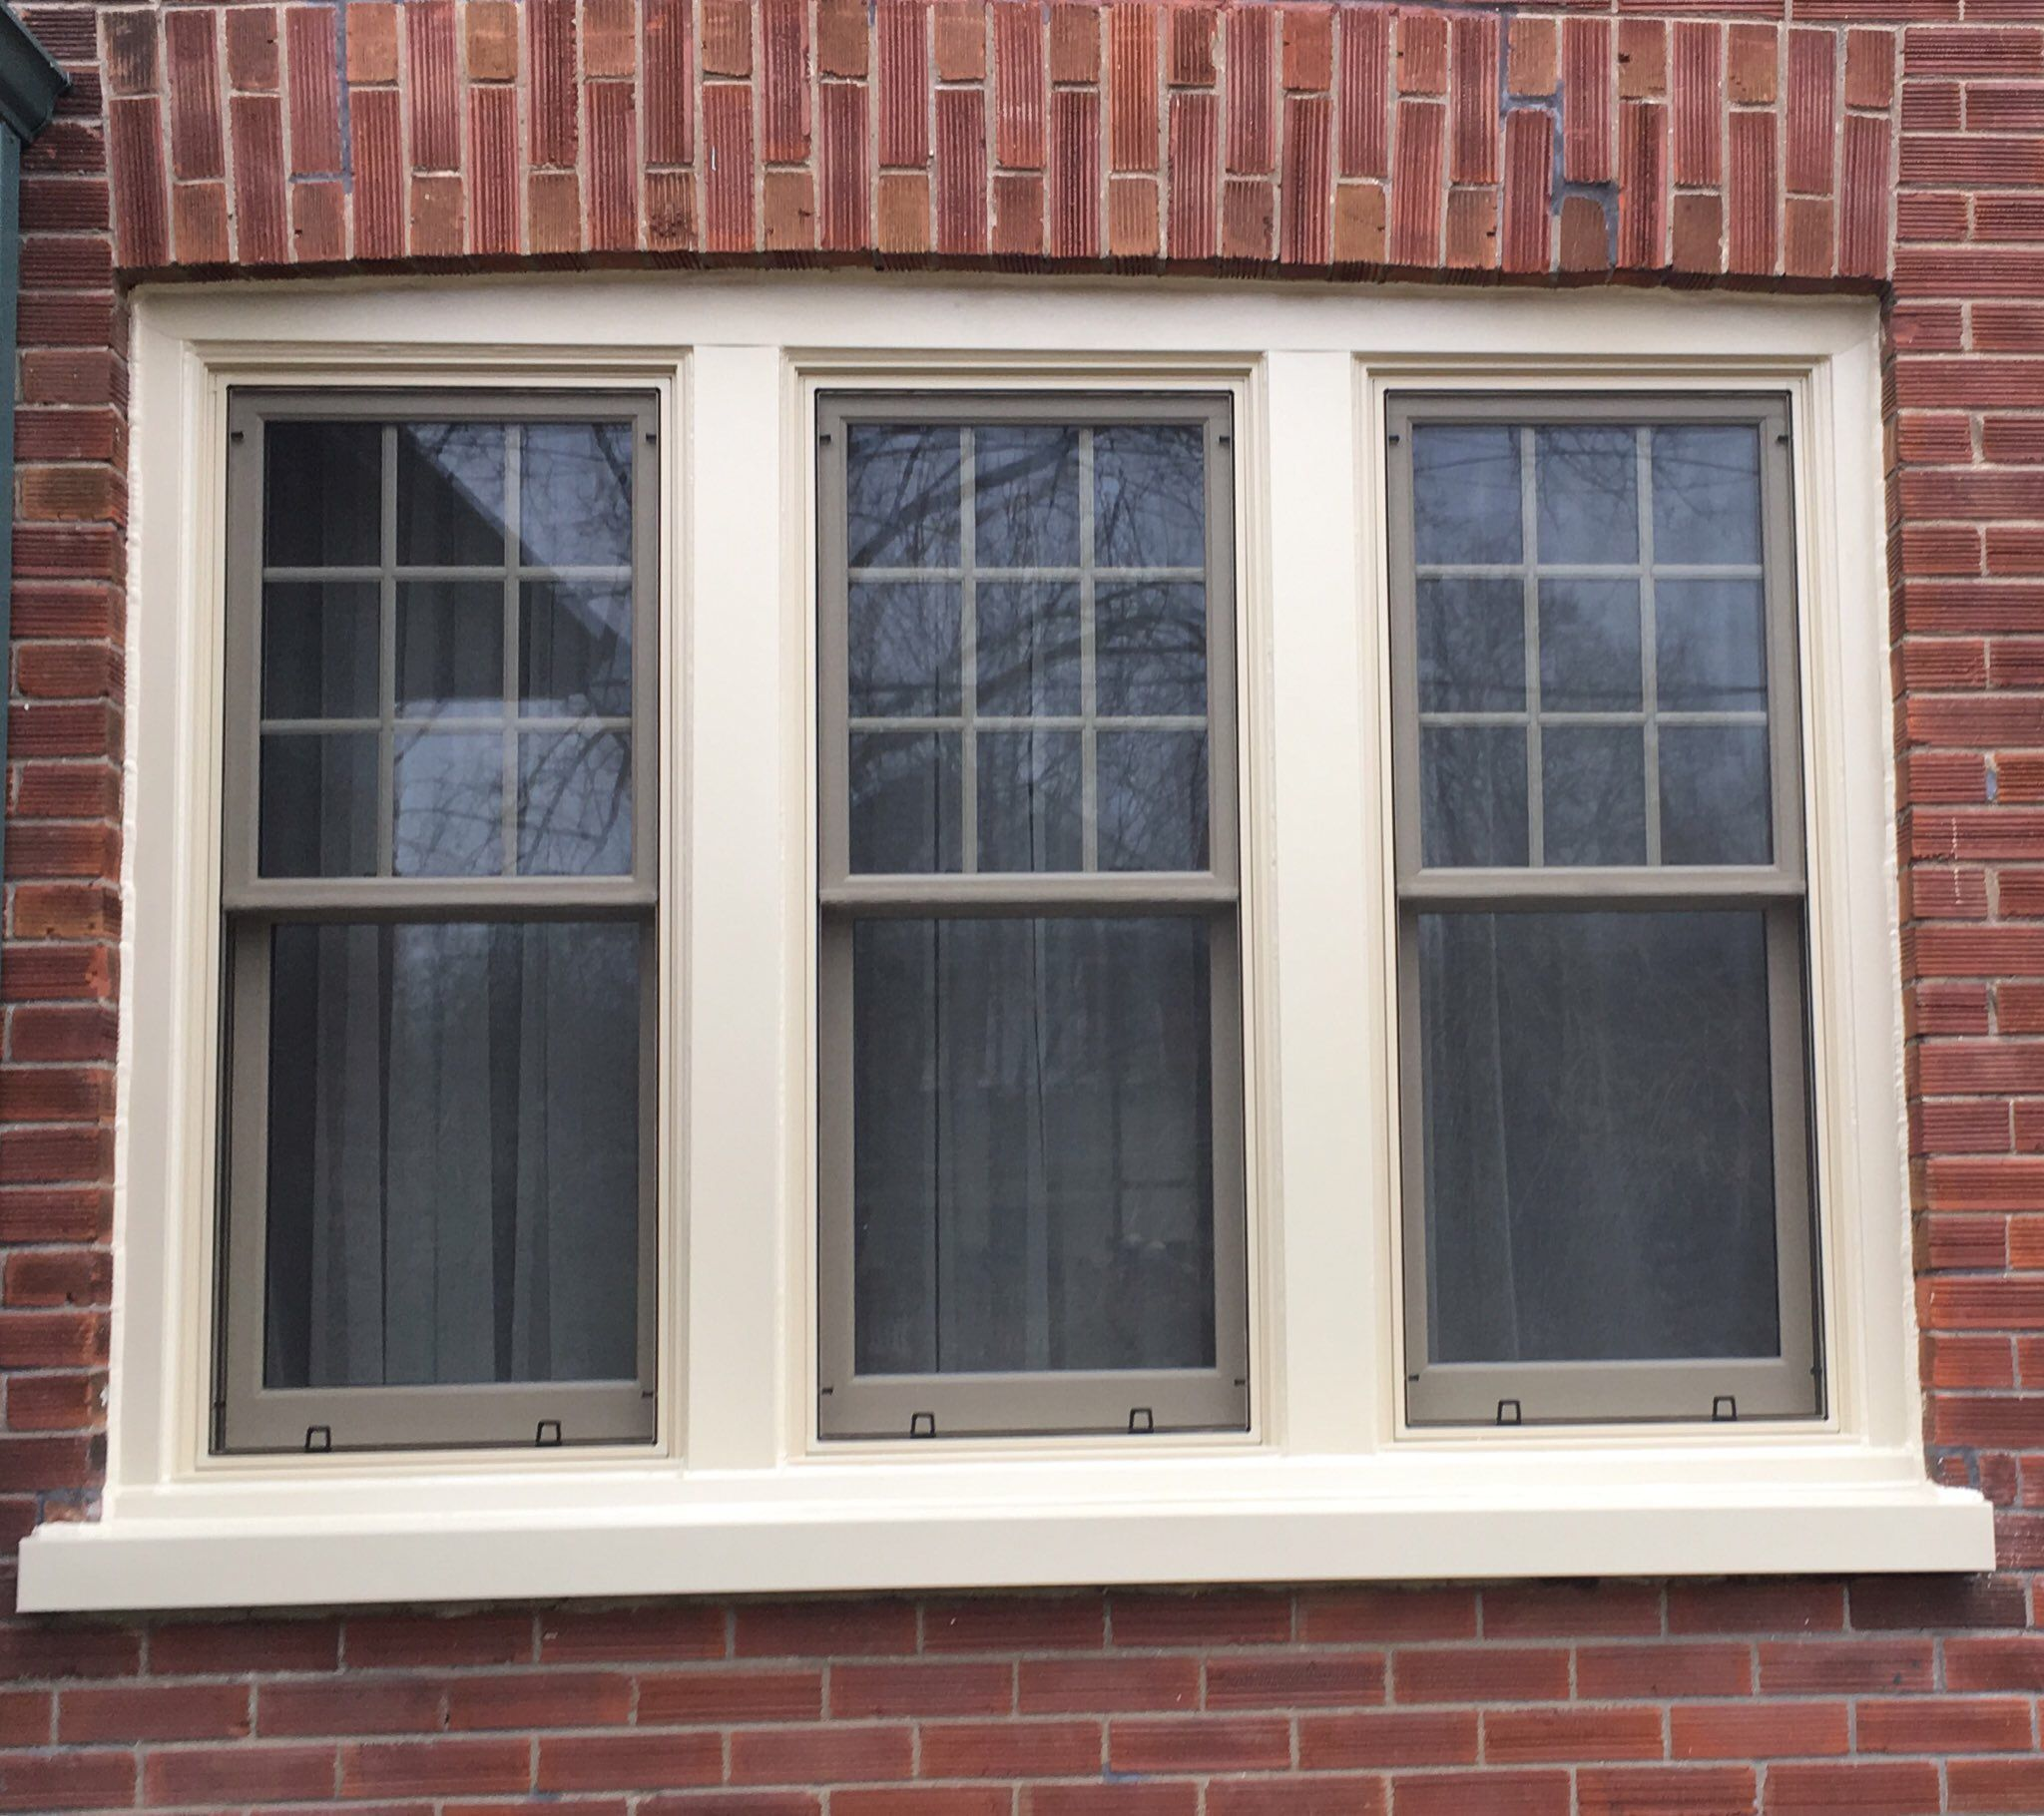 Aluminum Clad Exterior Wood Interior Wood Double Hung Windows With 3 X 3 Grilles In Top Sash Wood Double Hung Windows Exterior Wood Windows